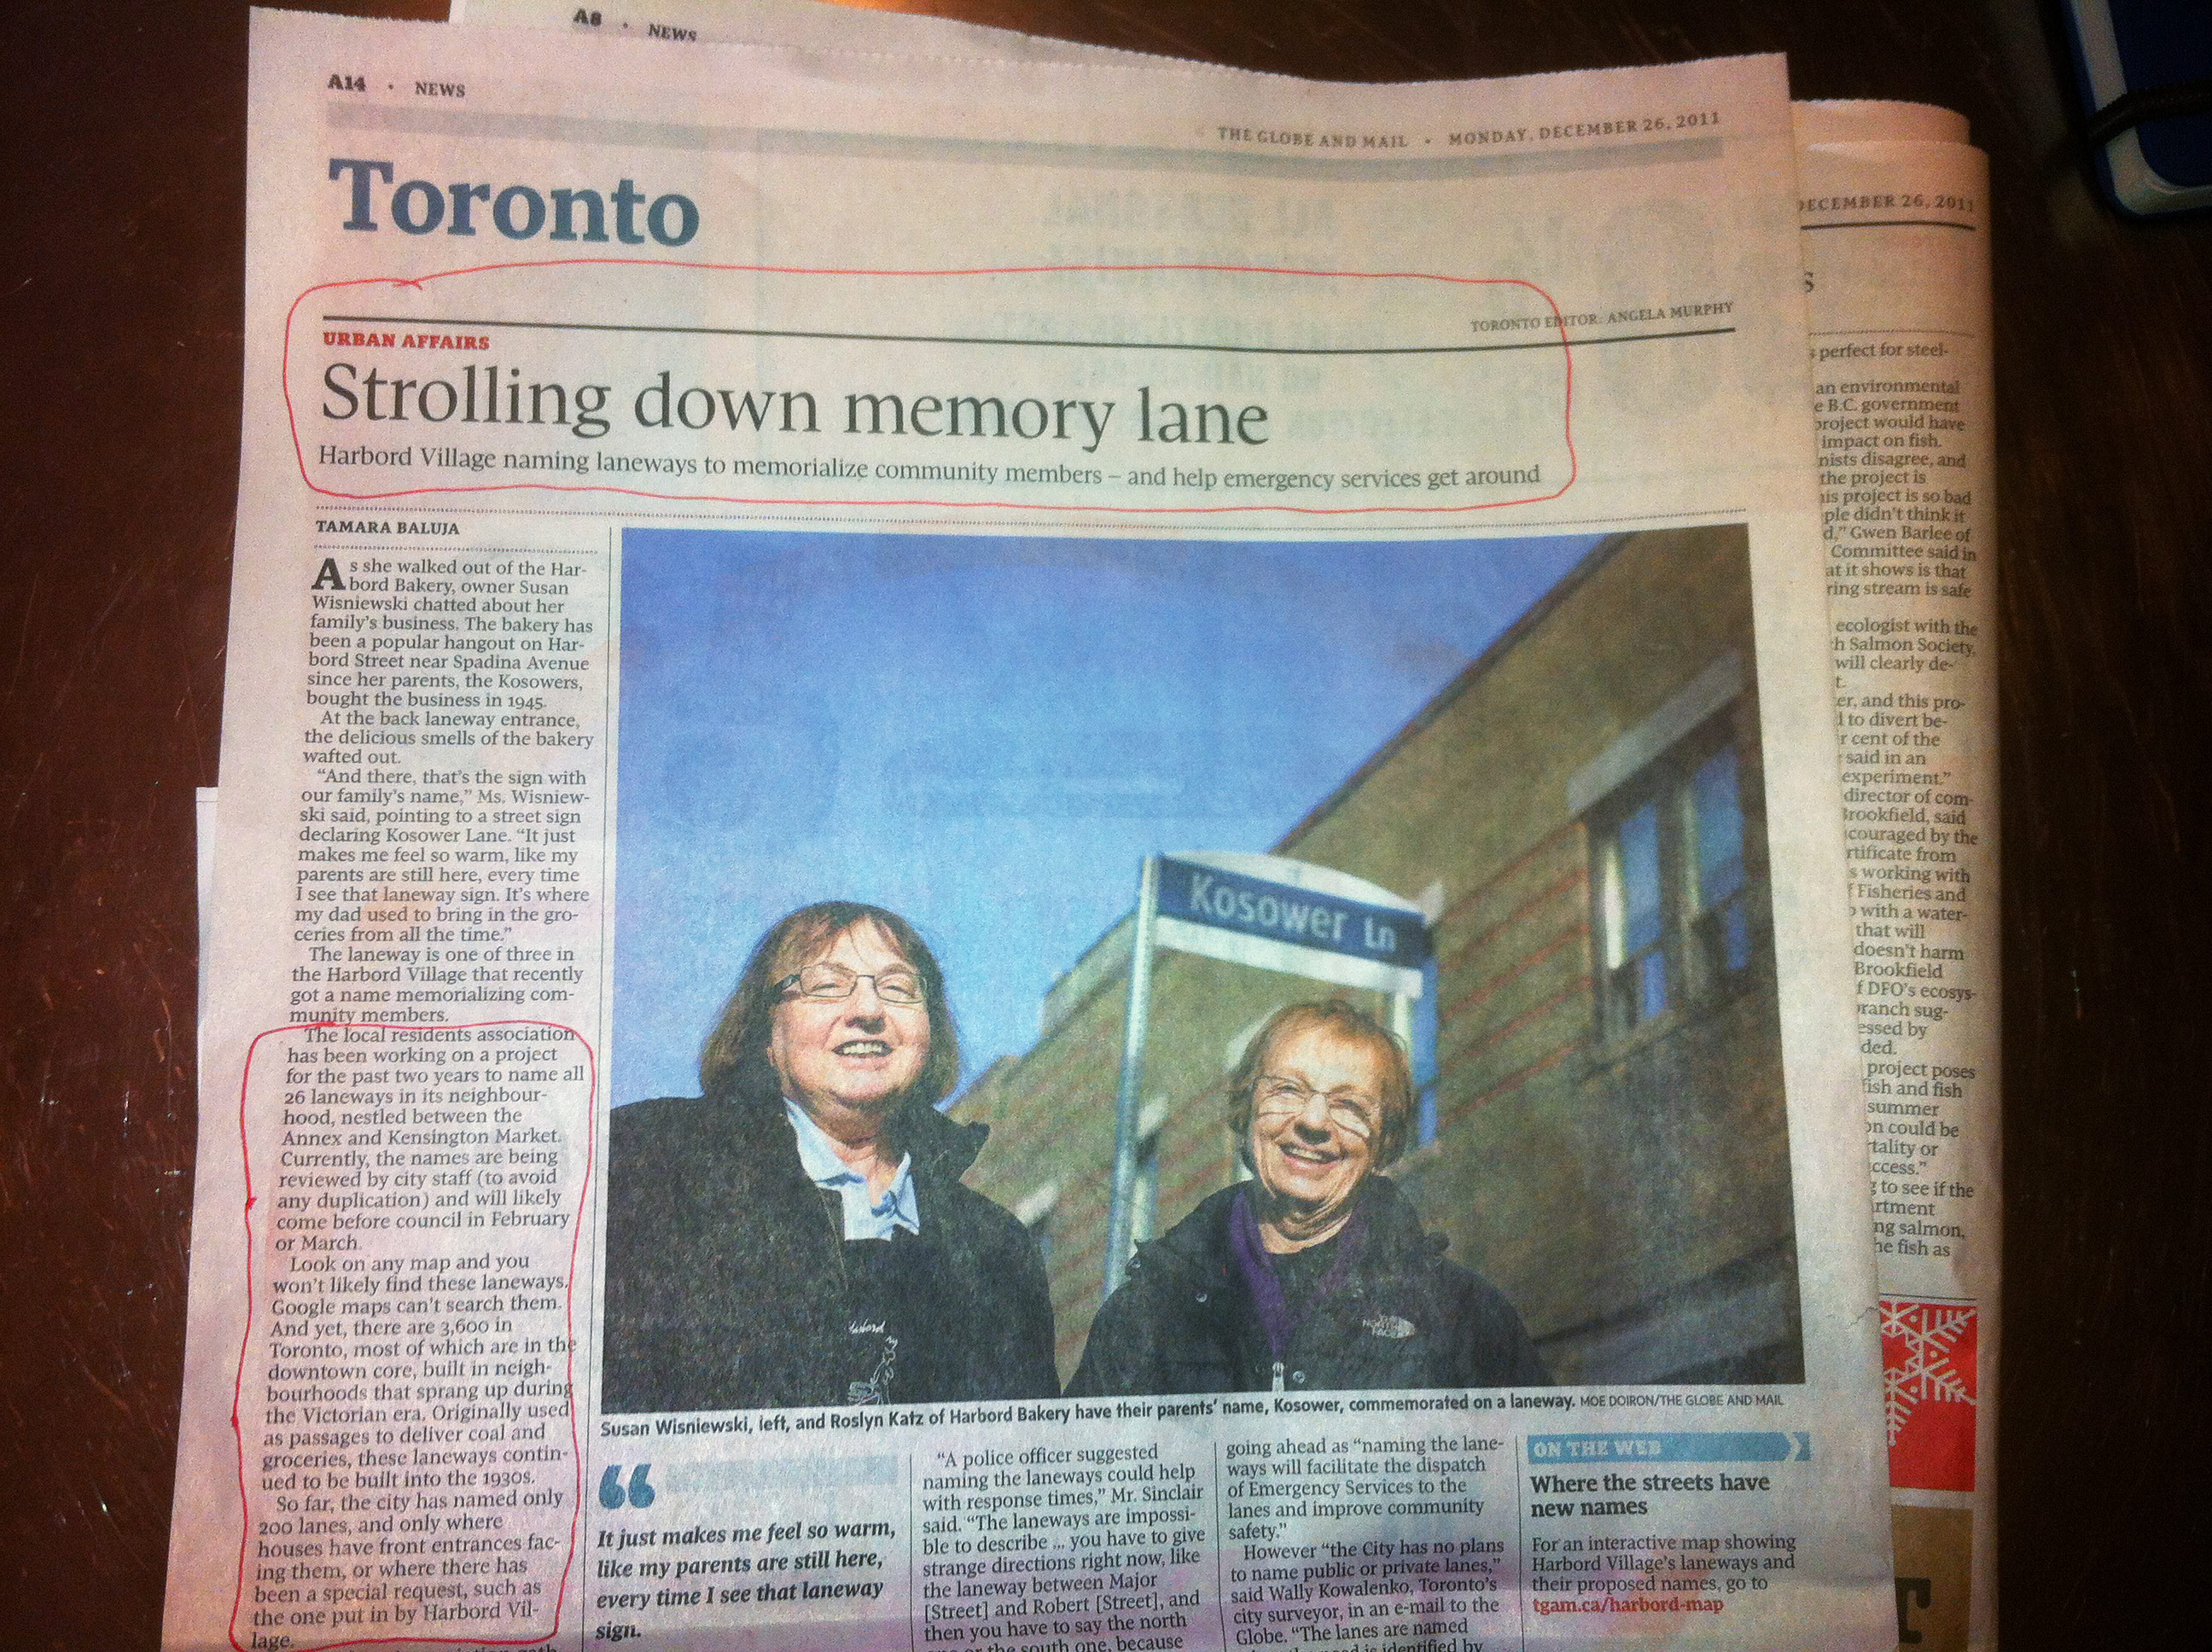 Photo from the December 26, 2011 edition of the Globe & Mail